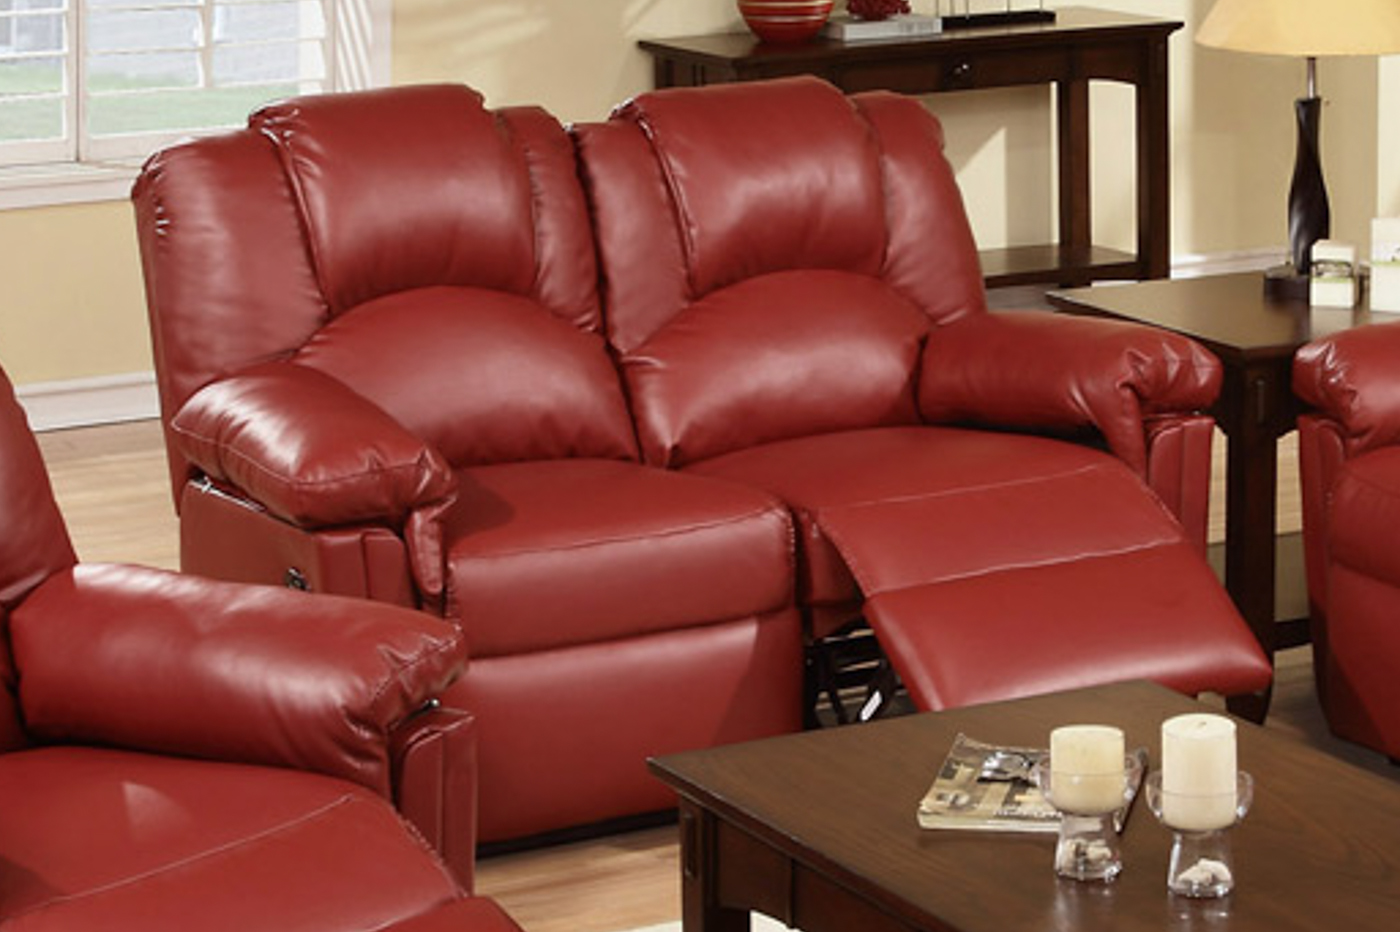 Red Leather Reclining Loveseat & Red Leather Reclining Loveseat - Steal-A-Sofa Furniture Outlet Los ... islam-shia.org